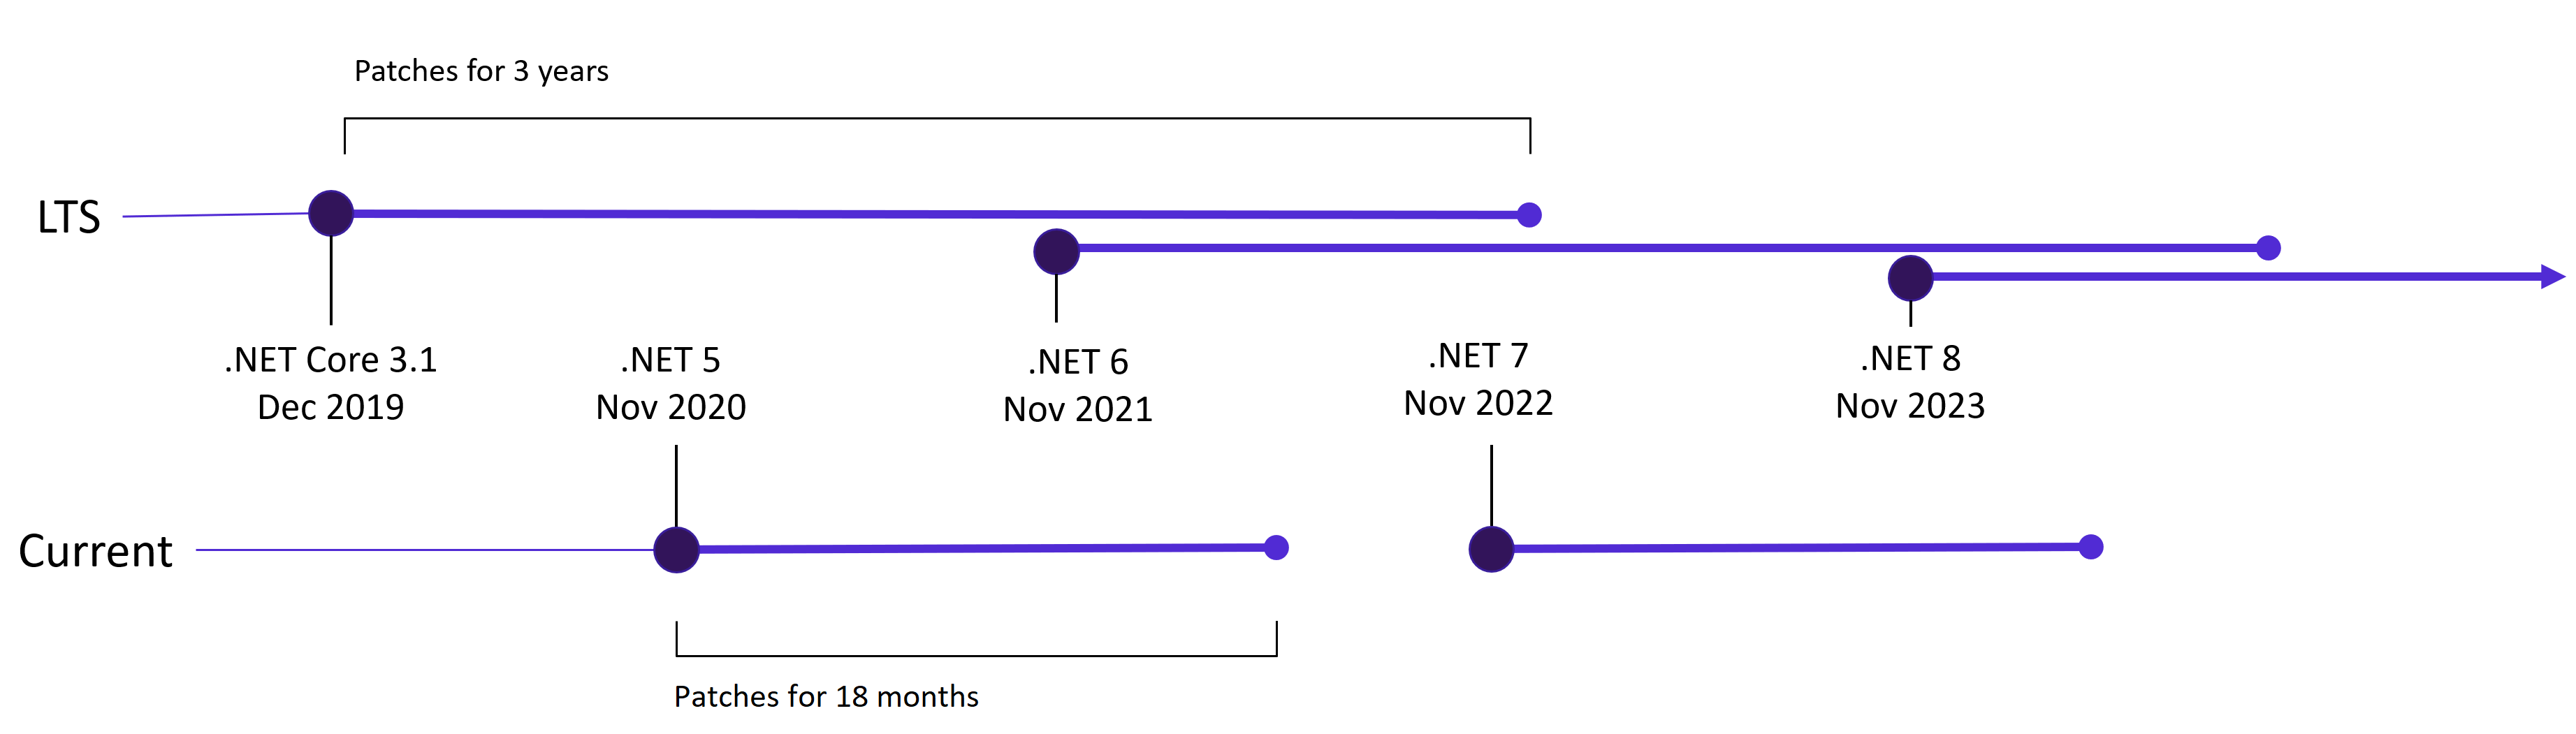 Chart showing .NET Core 3.1 as an LTS release that happened in December 2019 and all other releases happening in November starting with .NET 5 and intercalating between Current and LTS